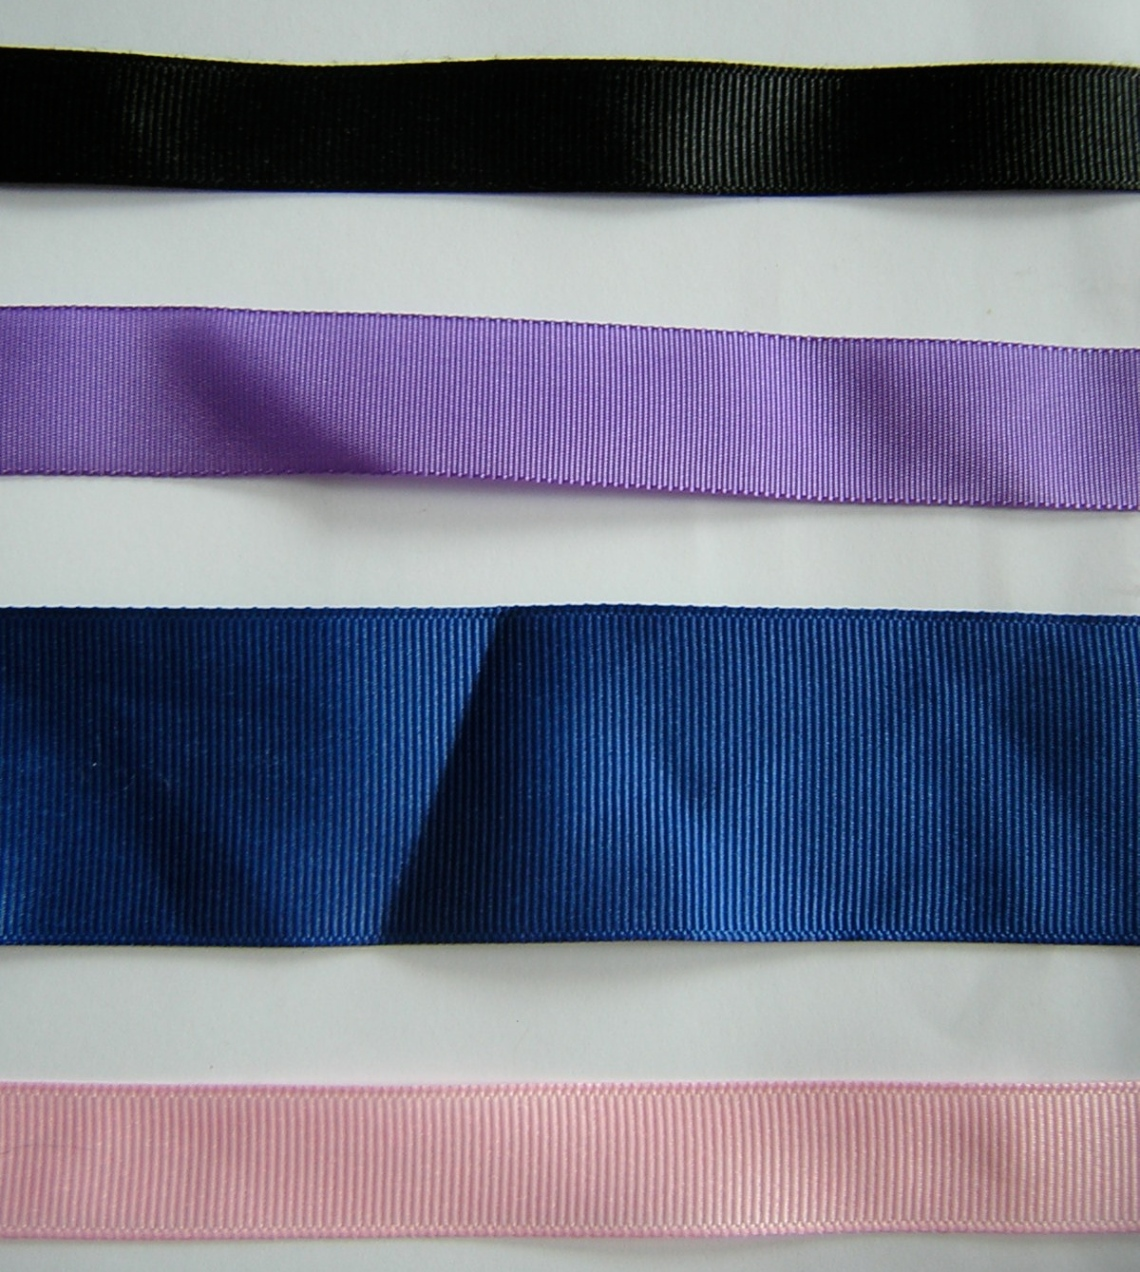 A picture of 4 different grosgrain ribbons